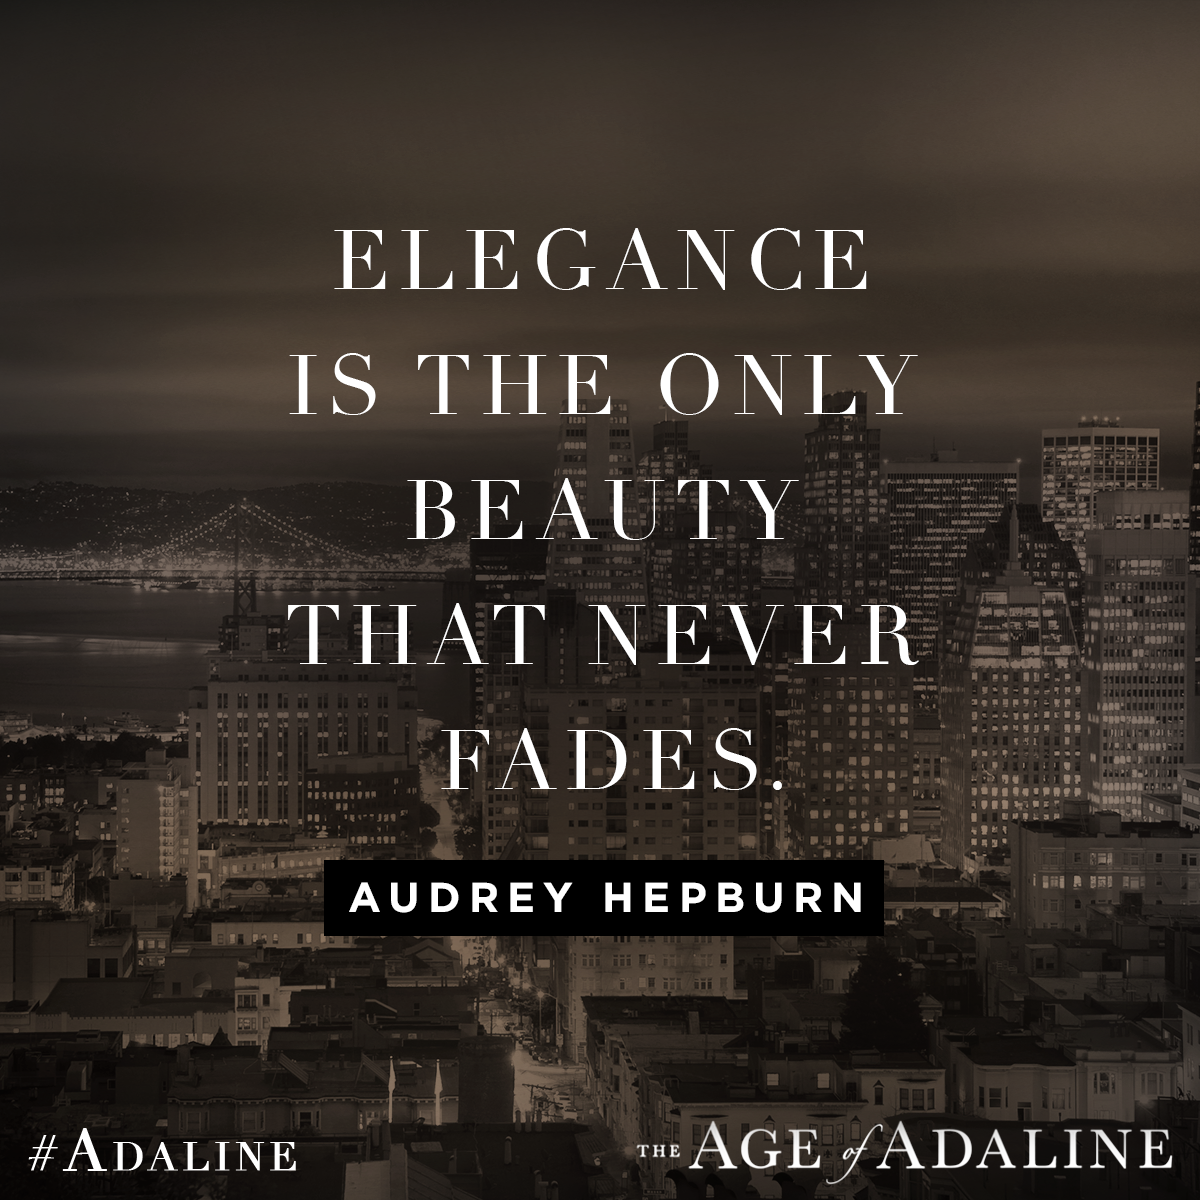 One trend that never goes out of style. Adaline Age of